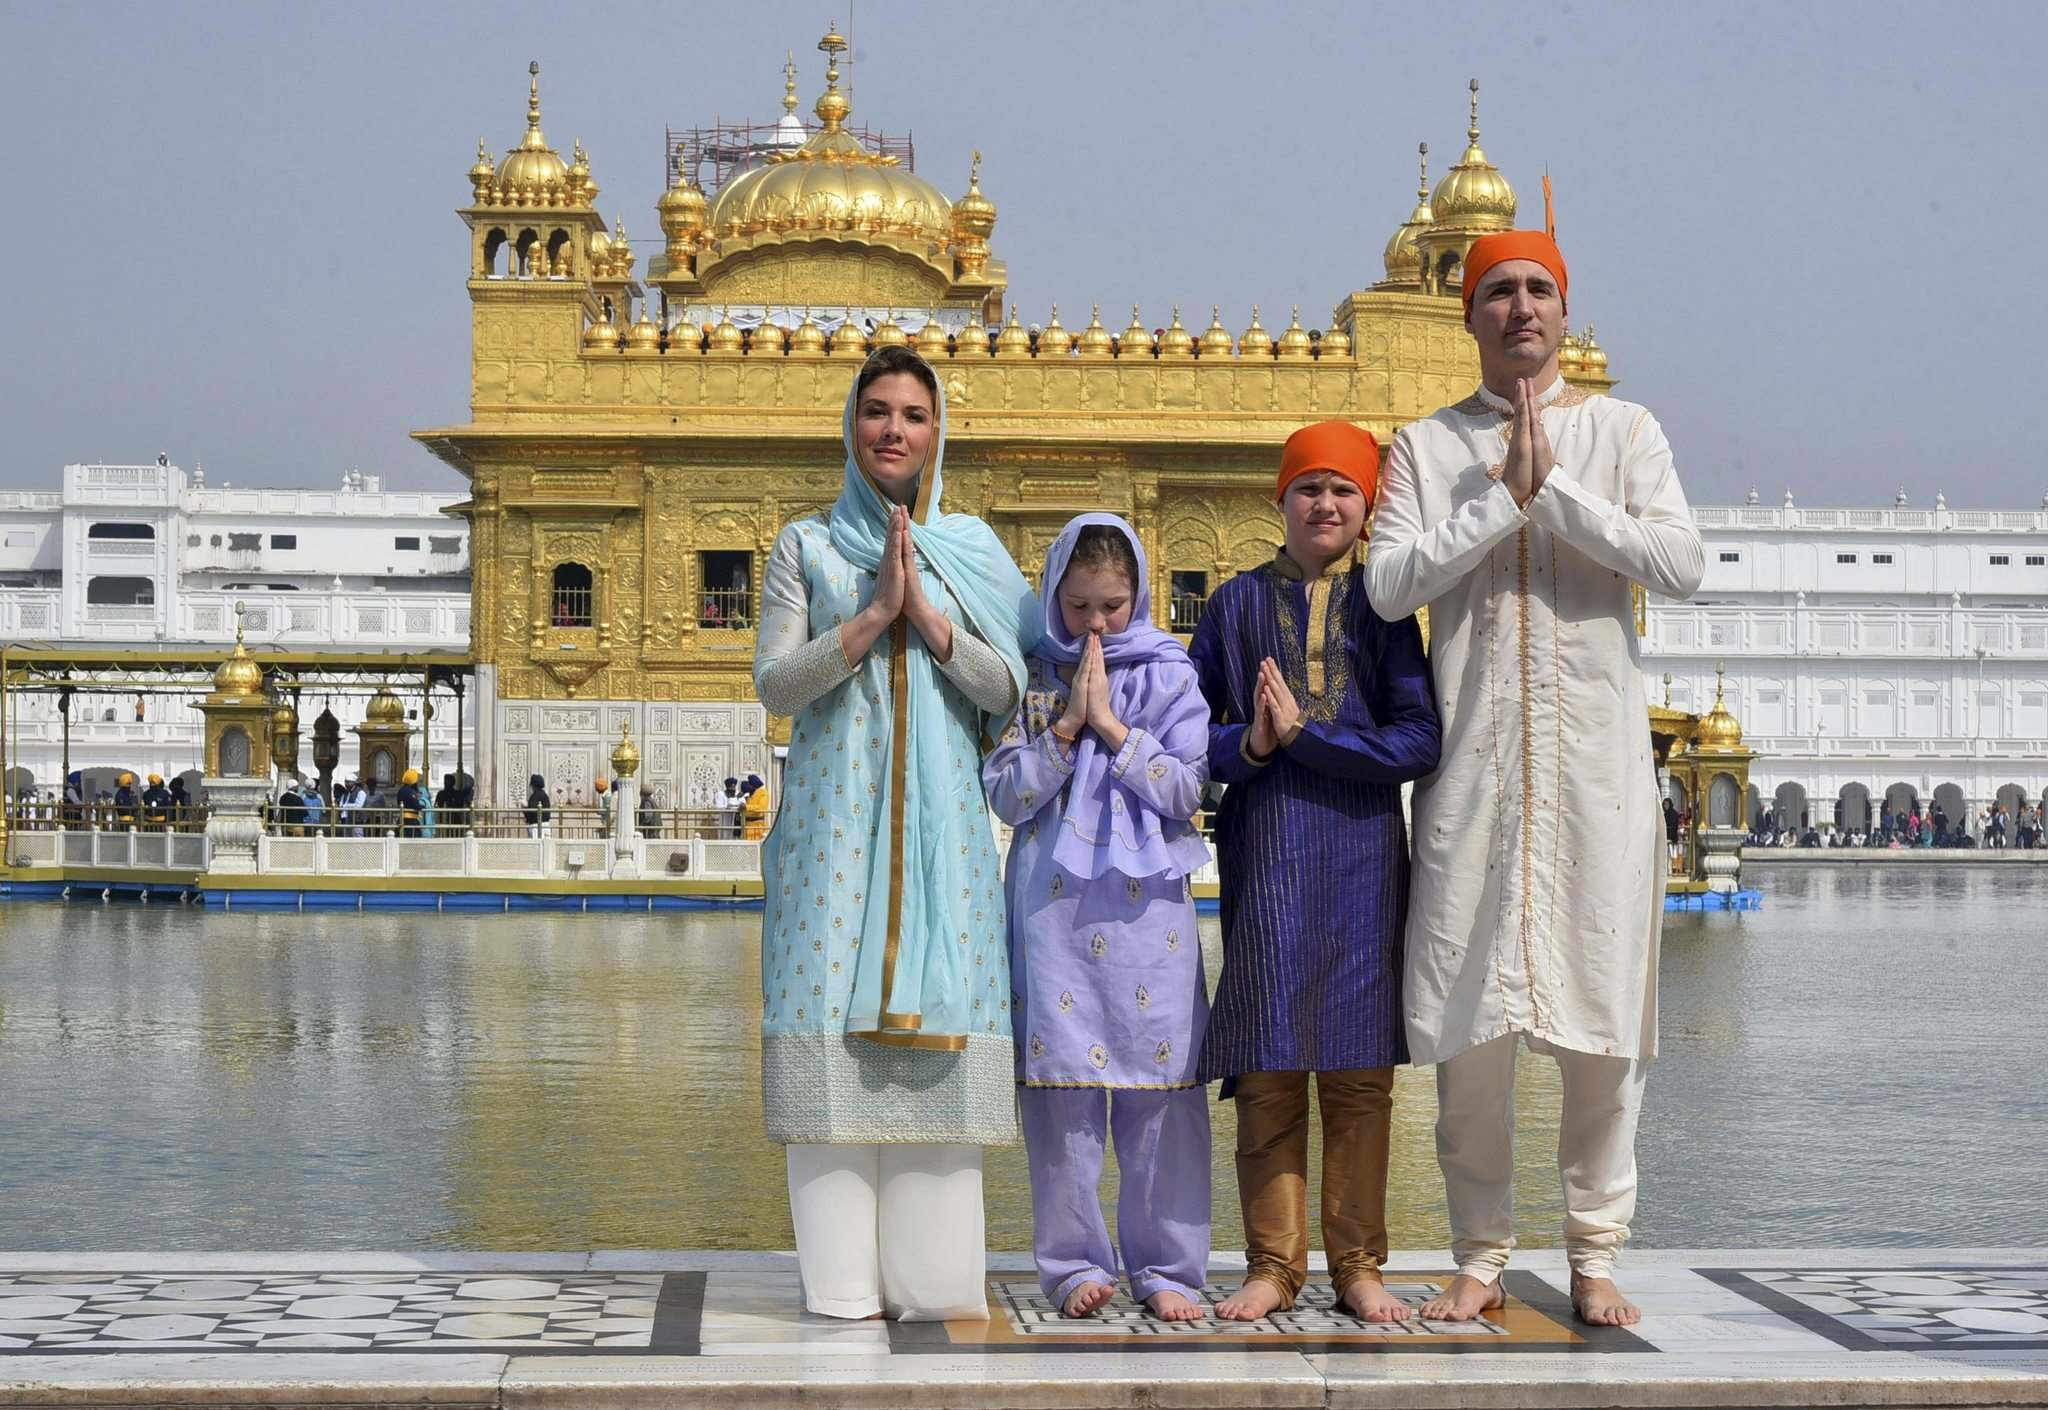 GOVERNMENT OF pUNJAB</p><p>Prime Minister Justin Trudeau, his wife Sophie Gr&#233;goire Trudeau, their daughter Ella-Grace and son Xavier dress in Indian style during their visit to Amritsar, India.</p>